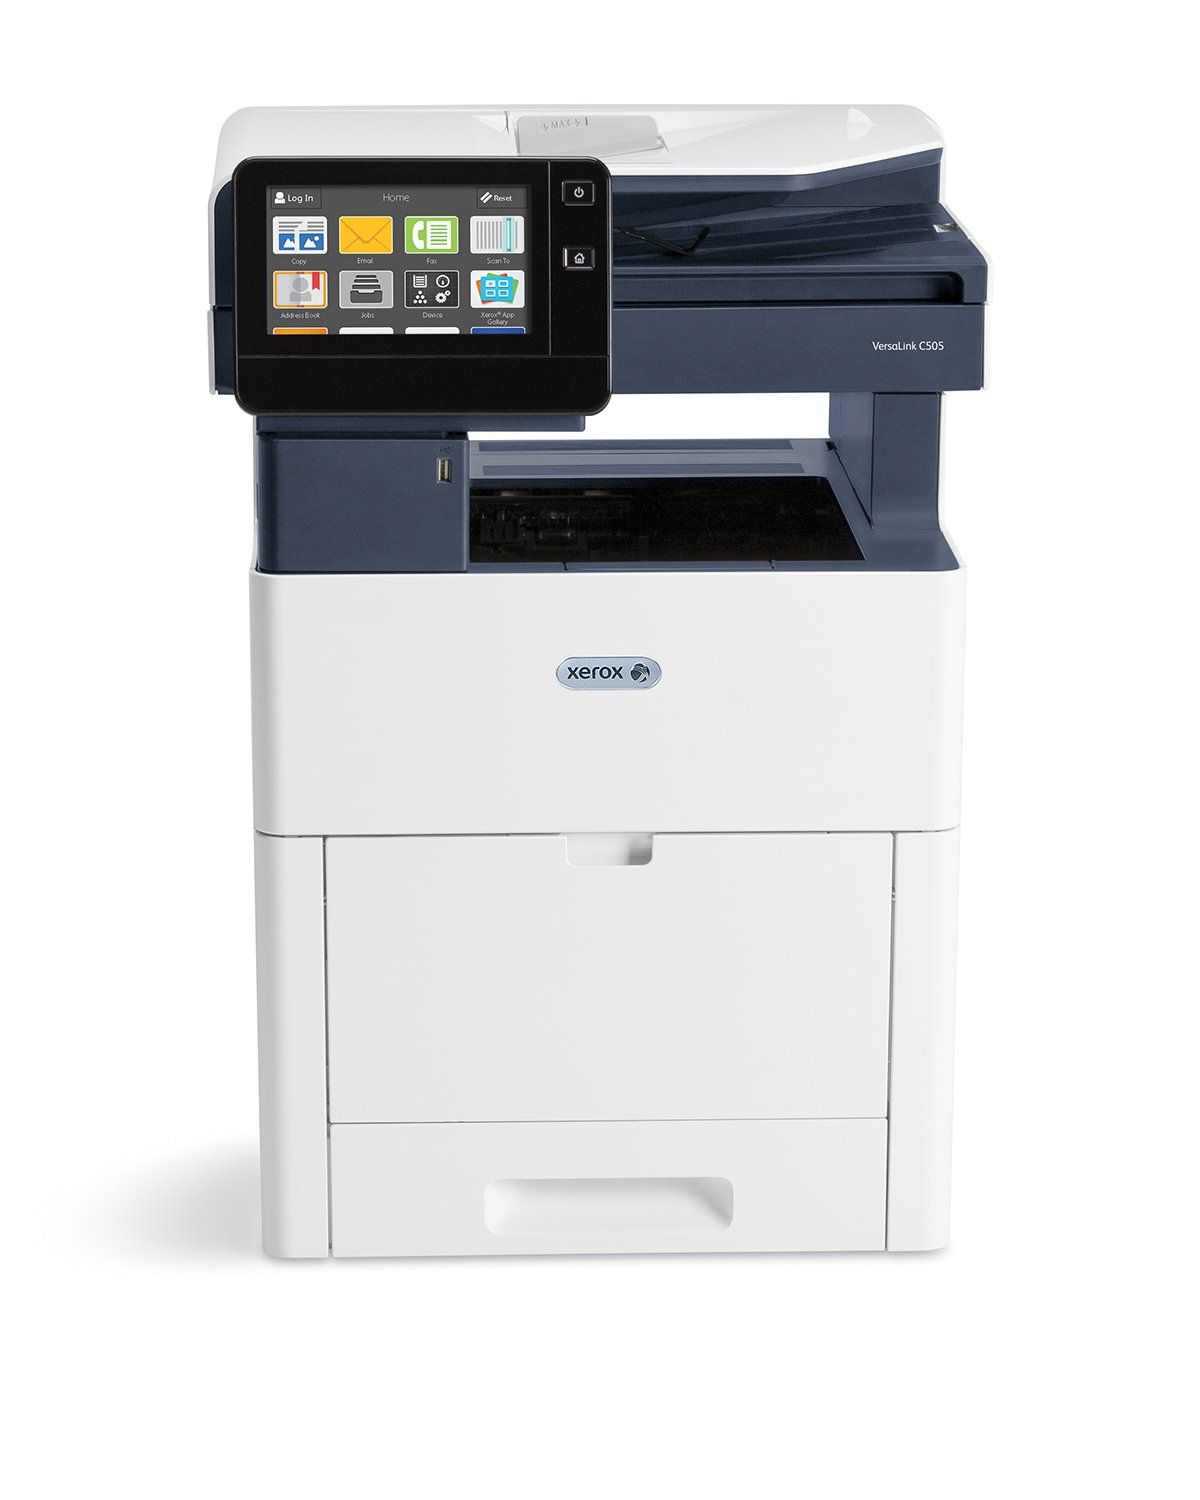 Canon Copiers Are Offering An Exclusive Xerox Machine On Rent In